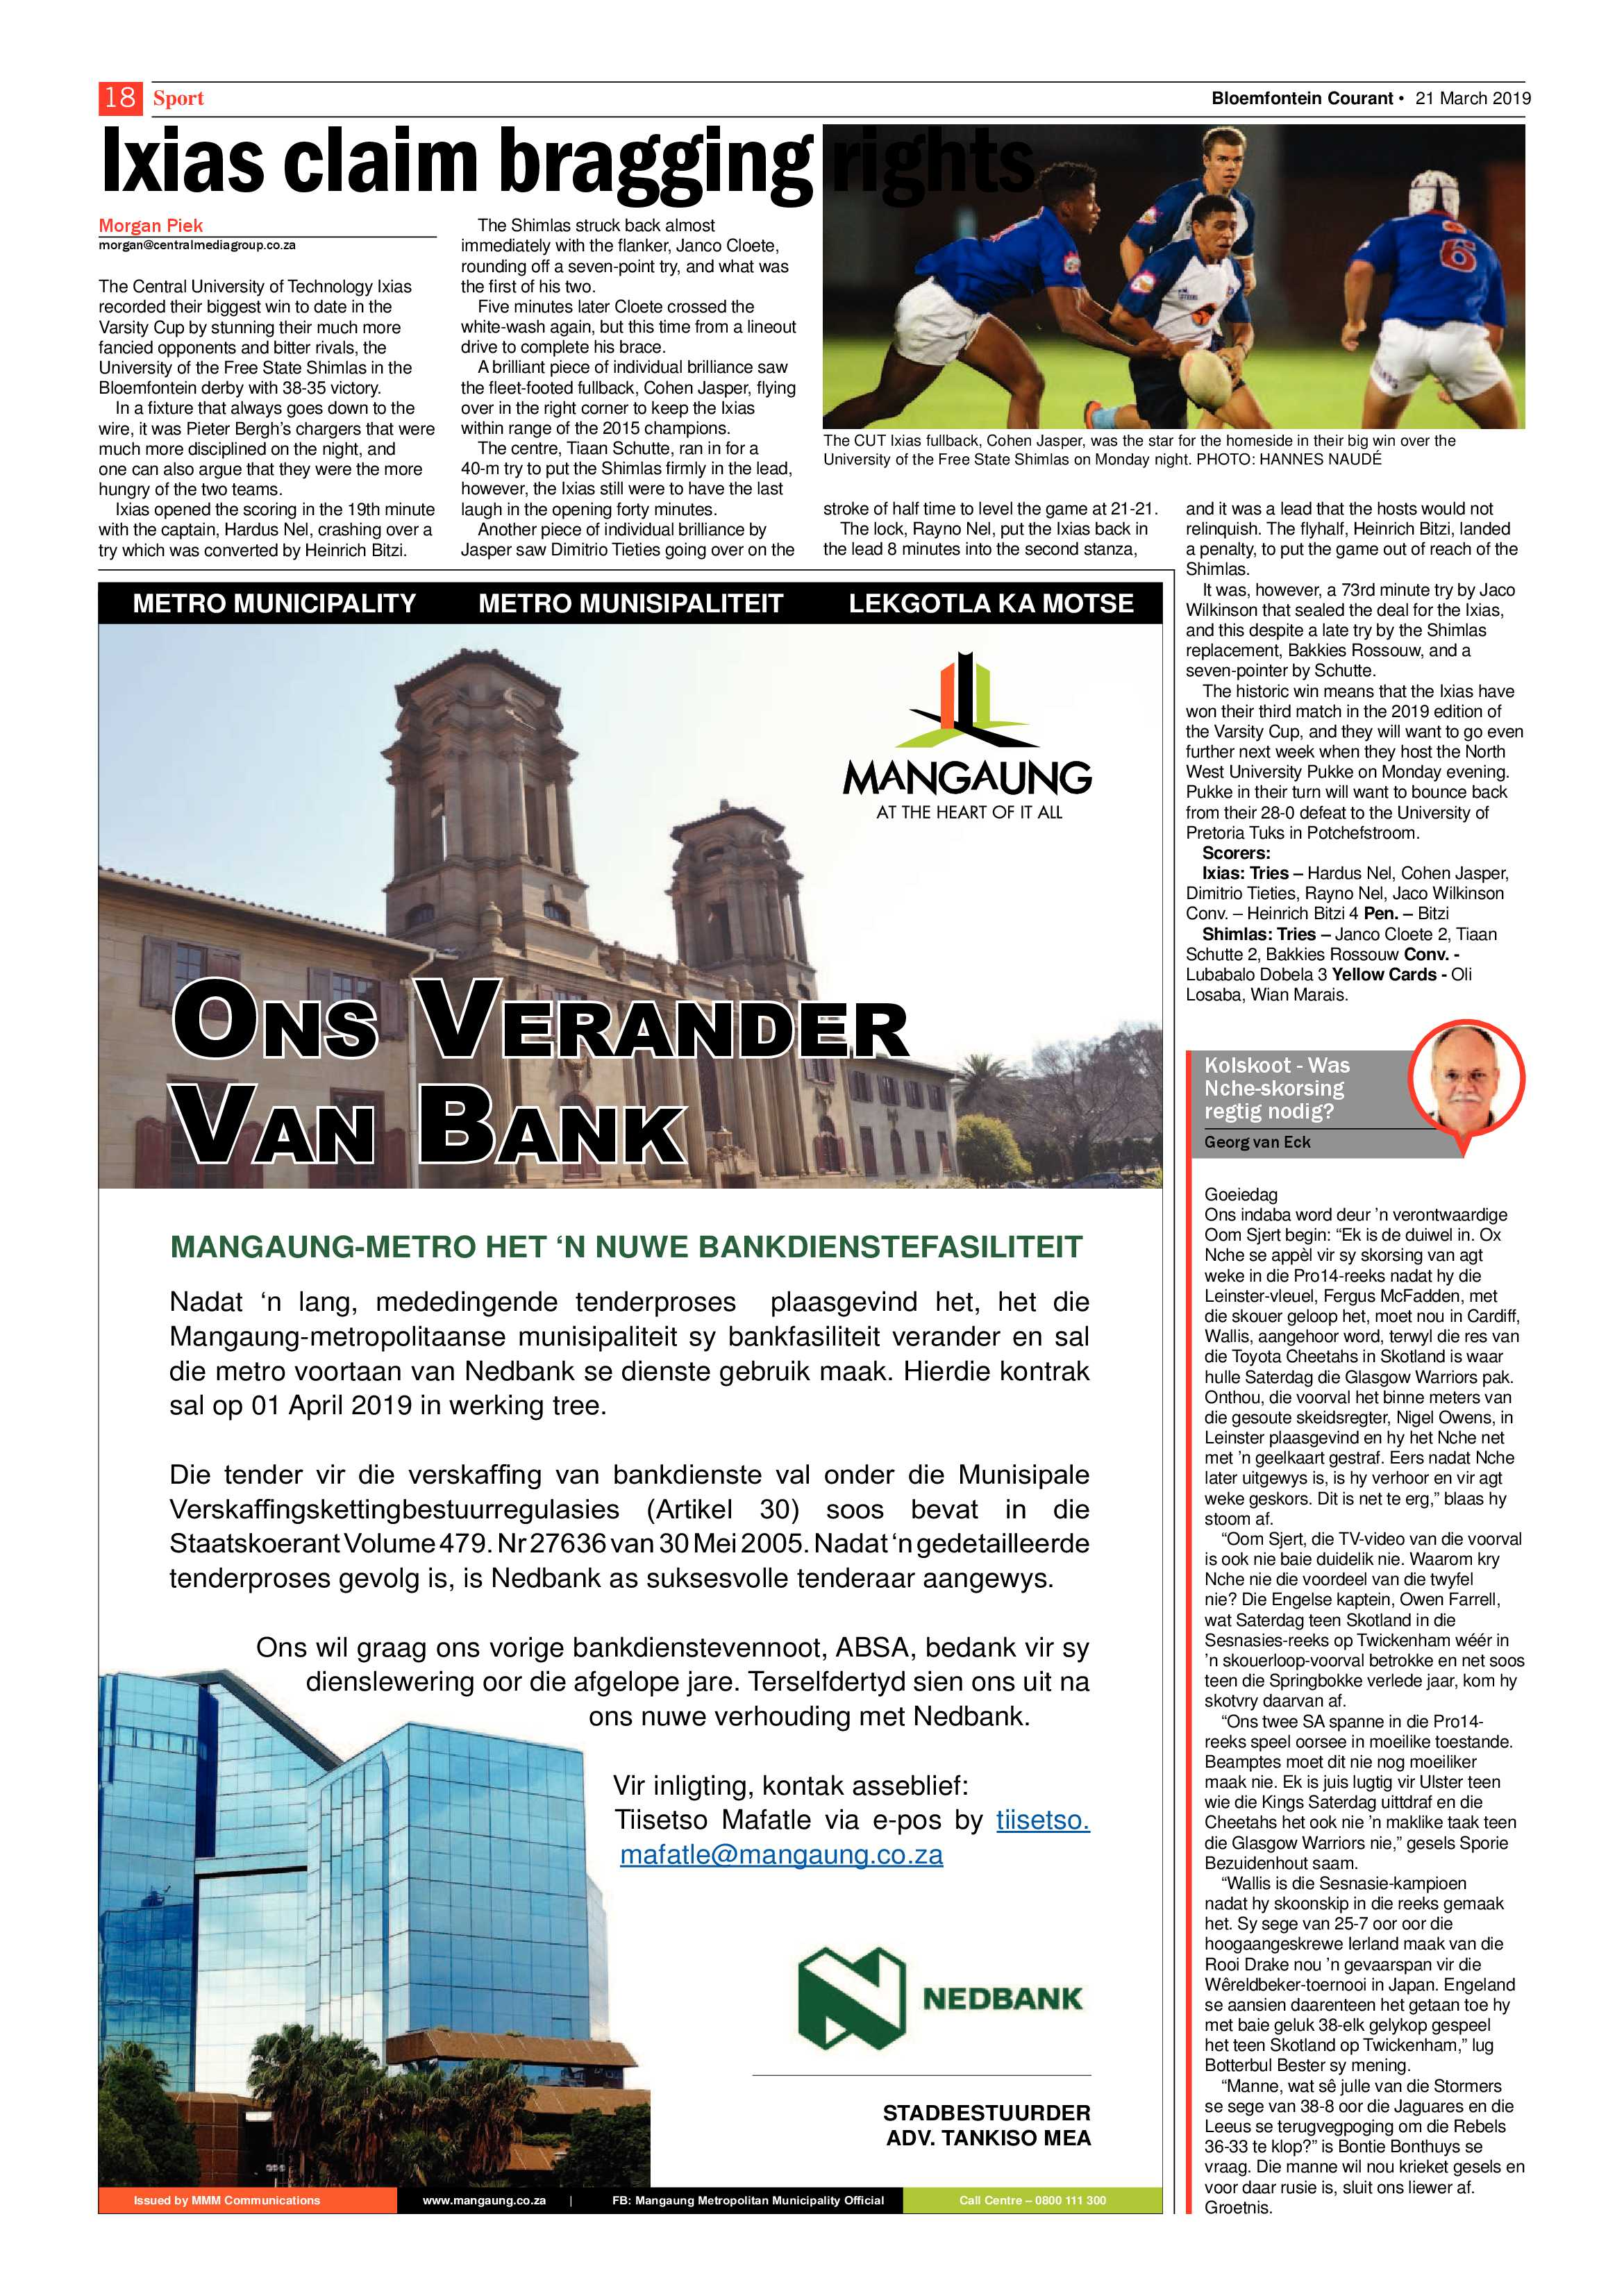 courant-21-march-2019-epapers-page-18